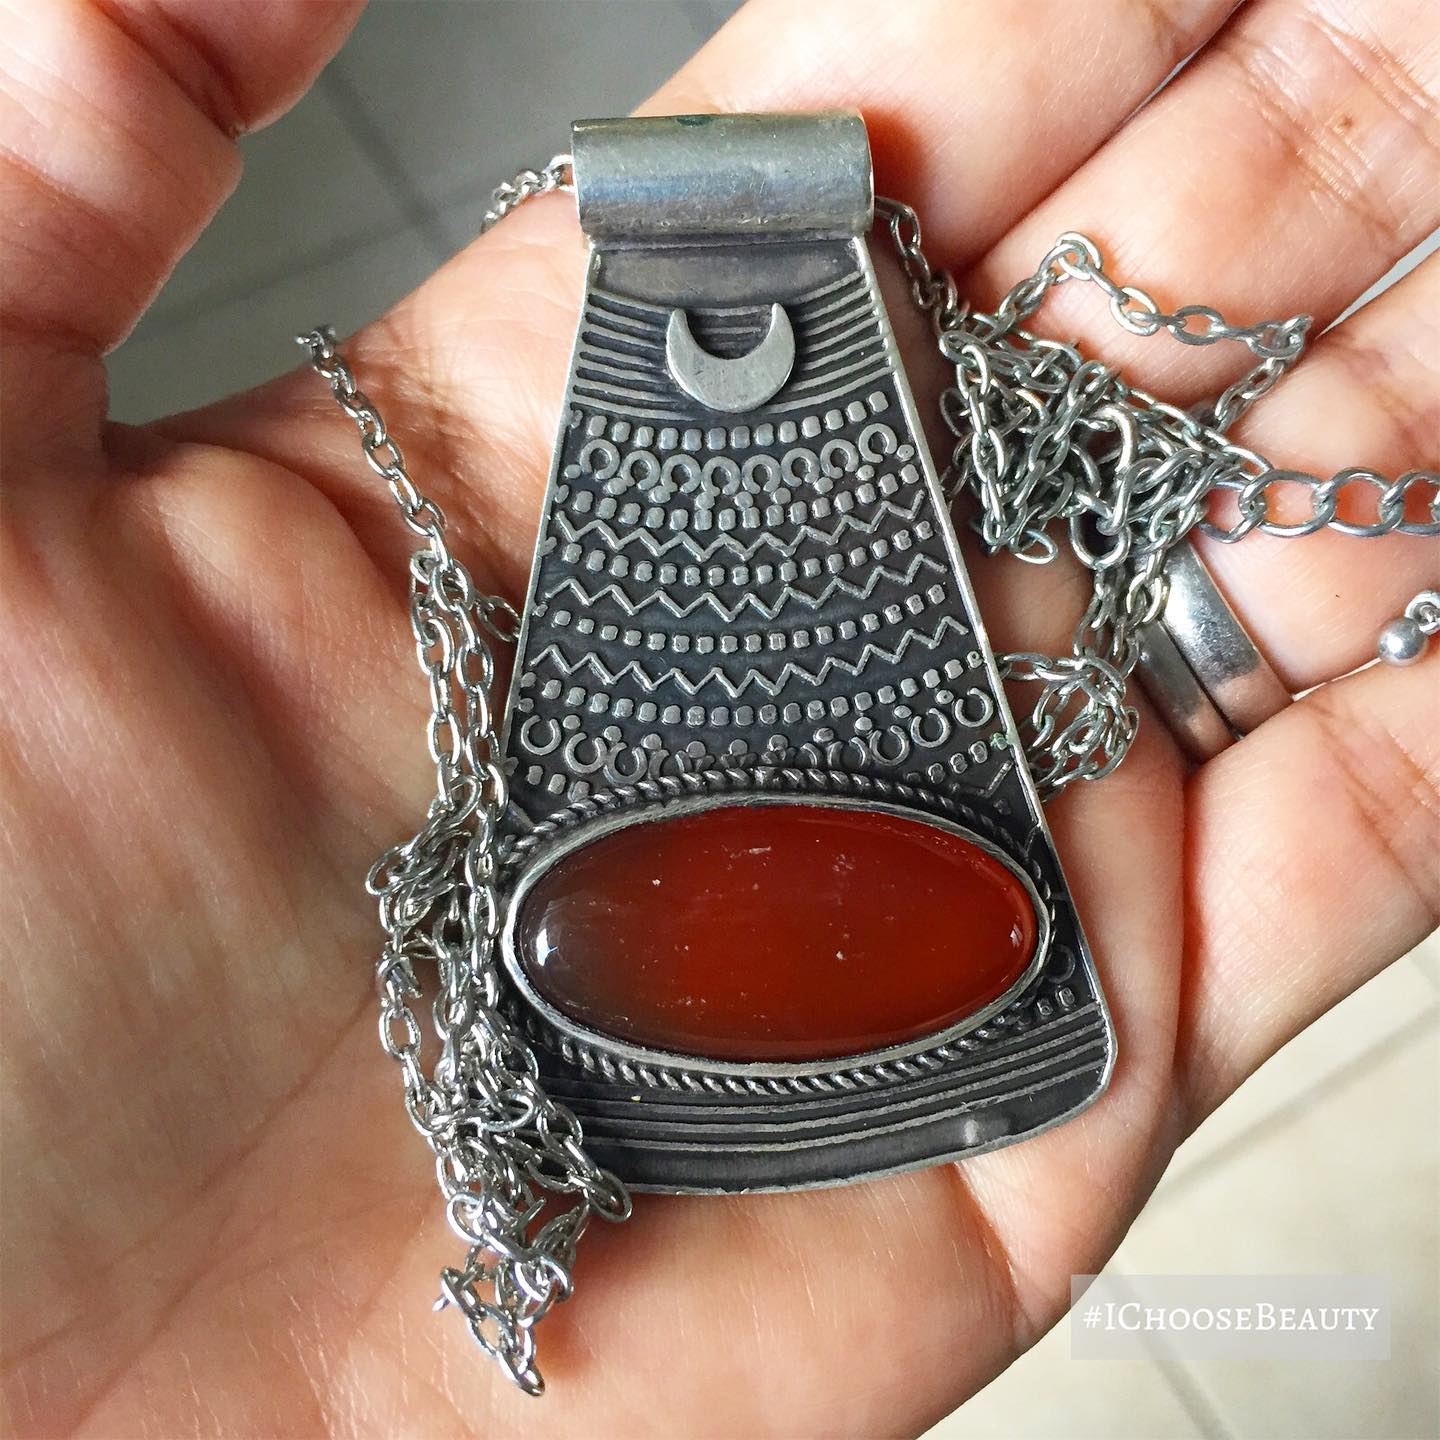 Been feeling drawn to my jewelry from Egypt lately. The detail on this pendant is just gorgeous.  #ichoosebeauty Day 2545